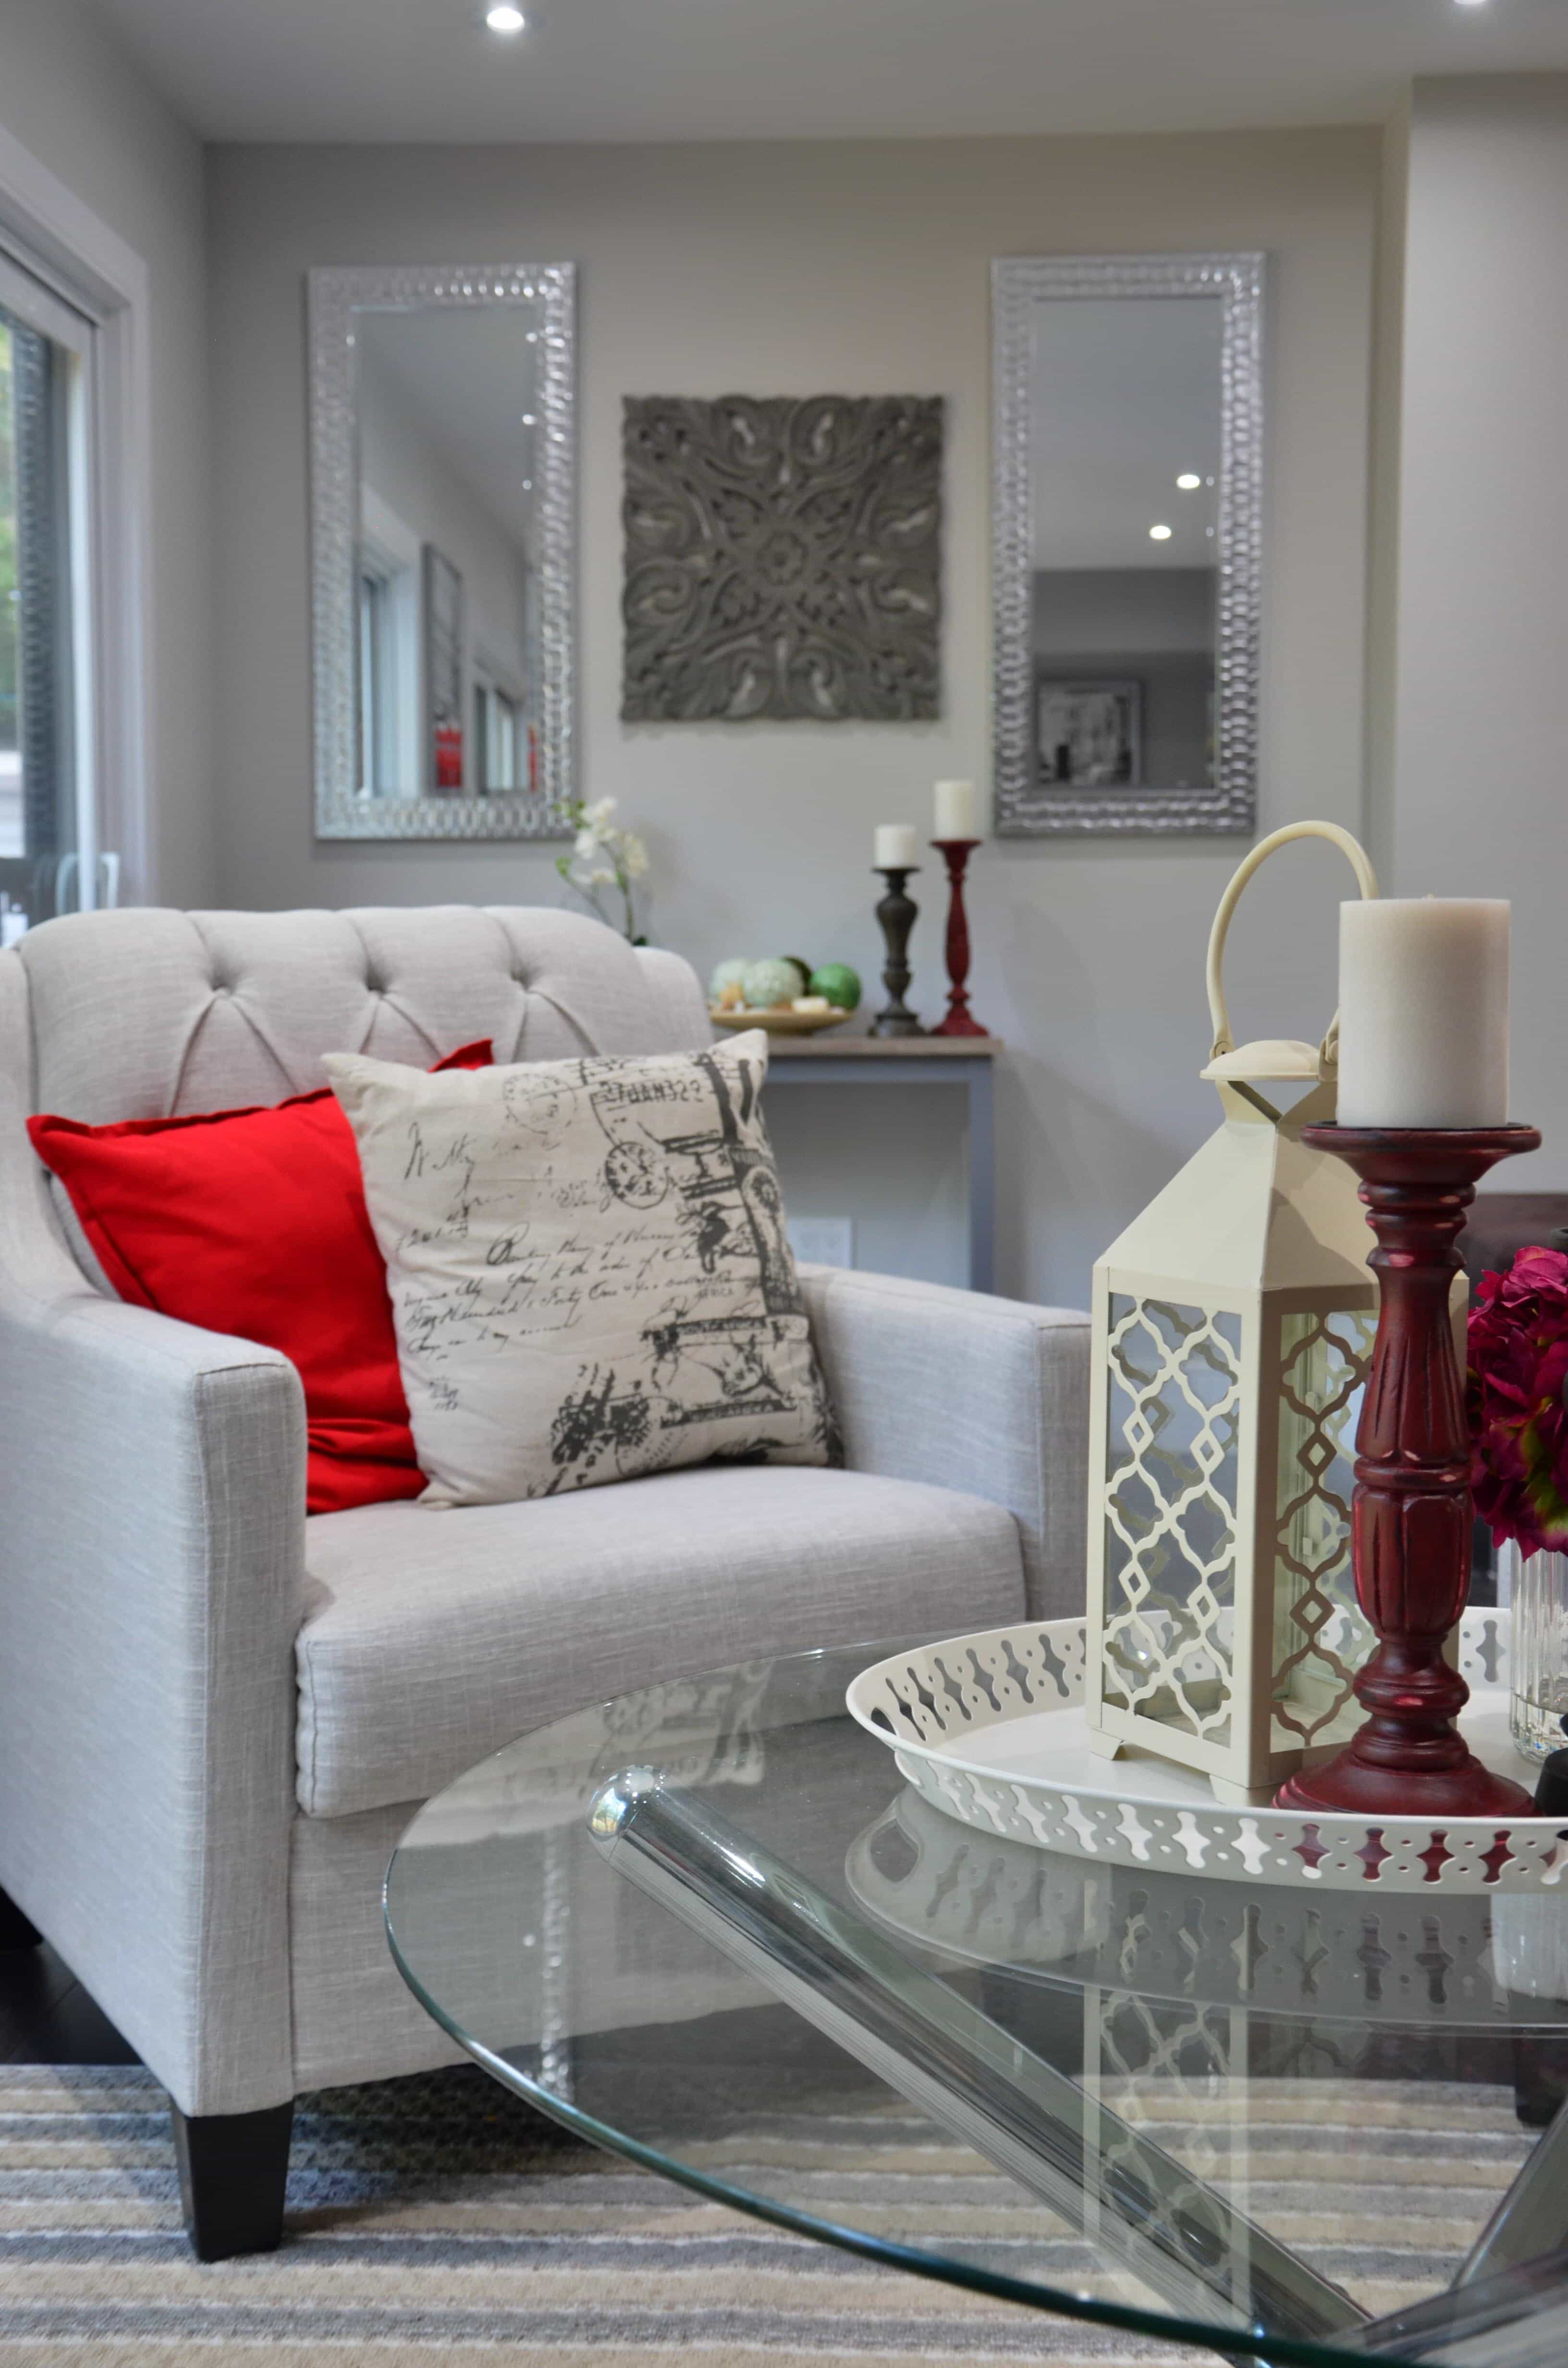 Home Interior Party Consultant Home Interior Party Consultant House Design Ideas